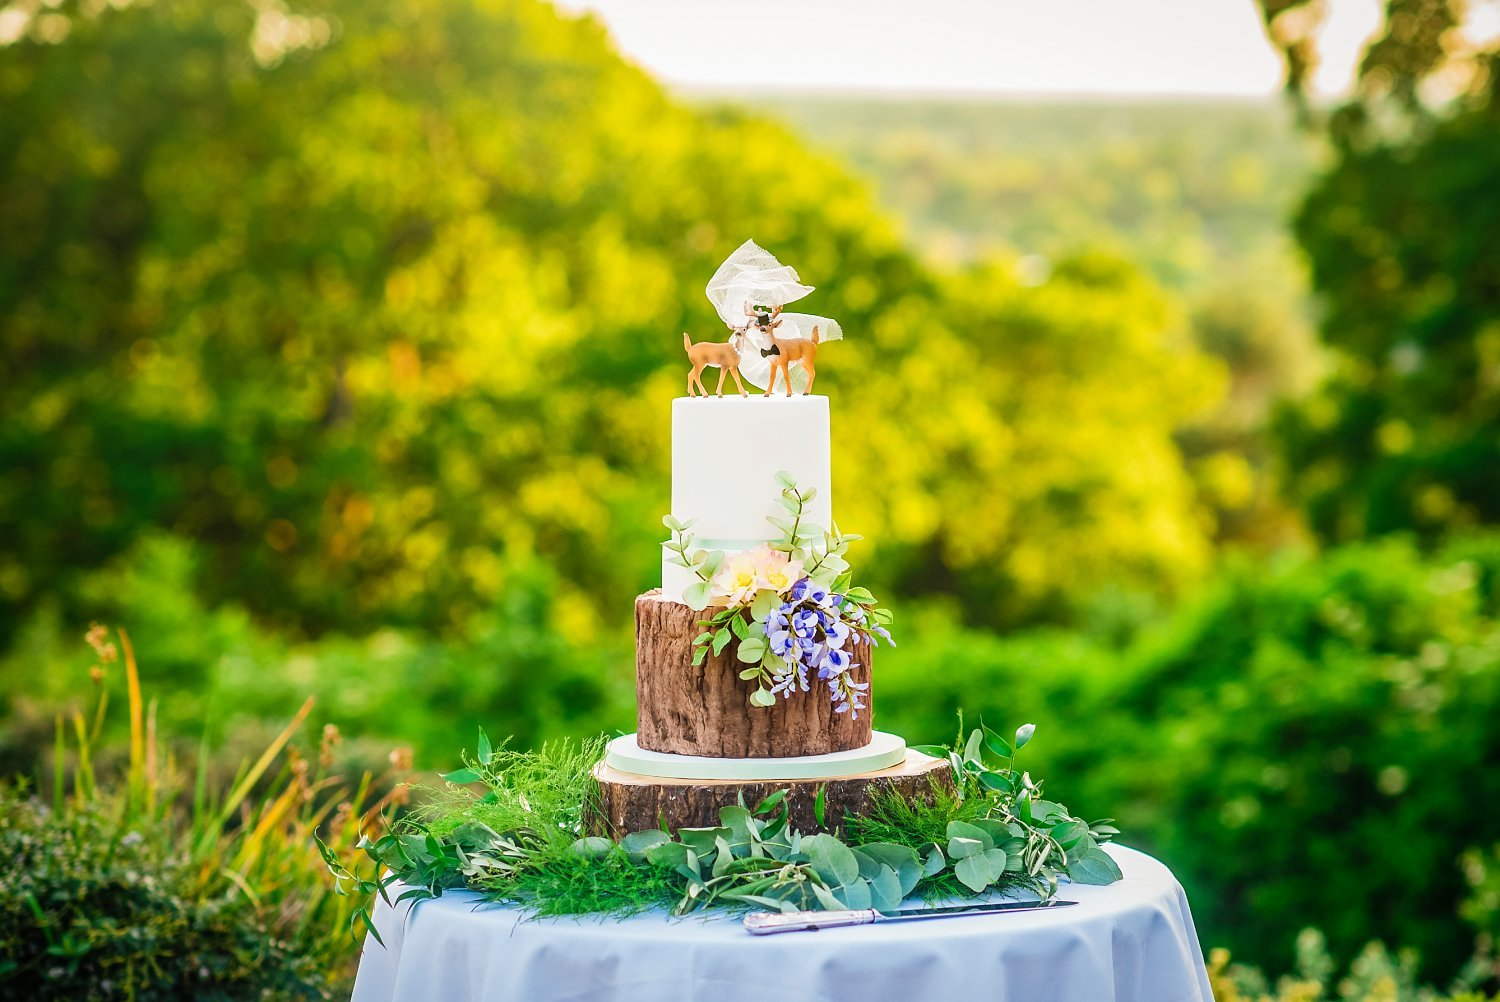 Fun-Filled wedding in Pembroke Lodge - wedding cake. it has reindeers on top. behind there are trees and greenery